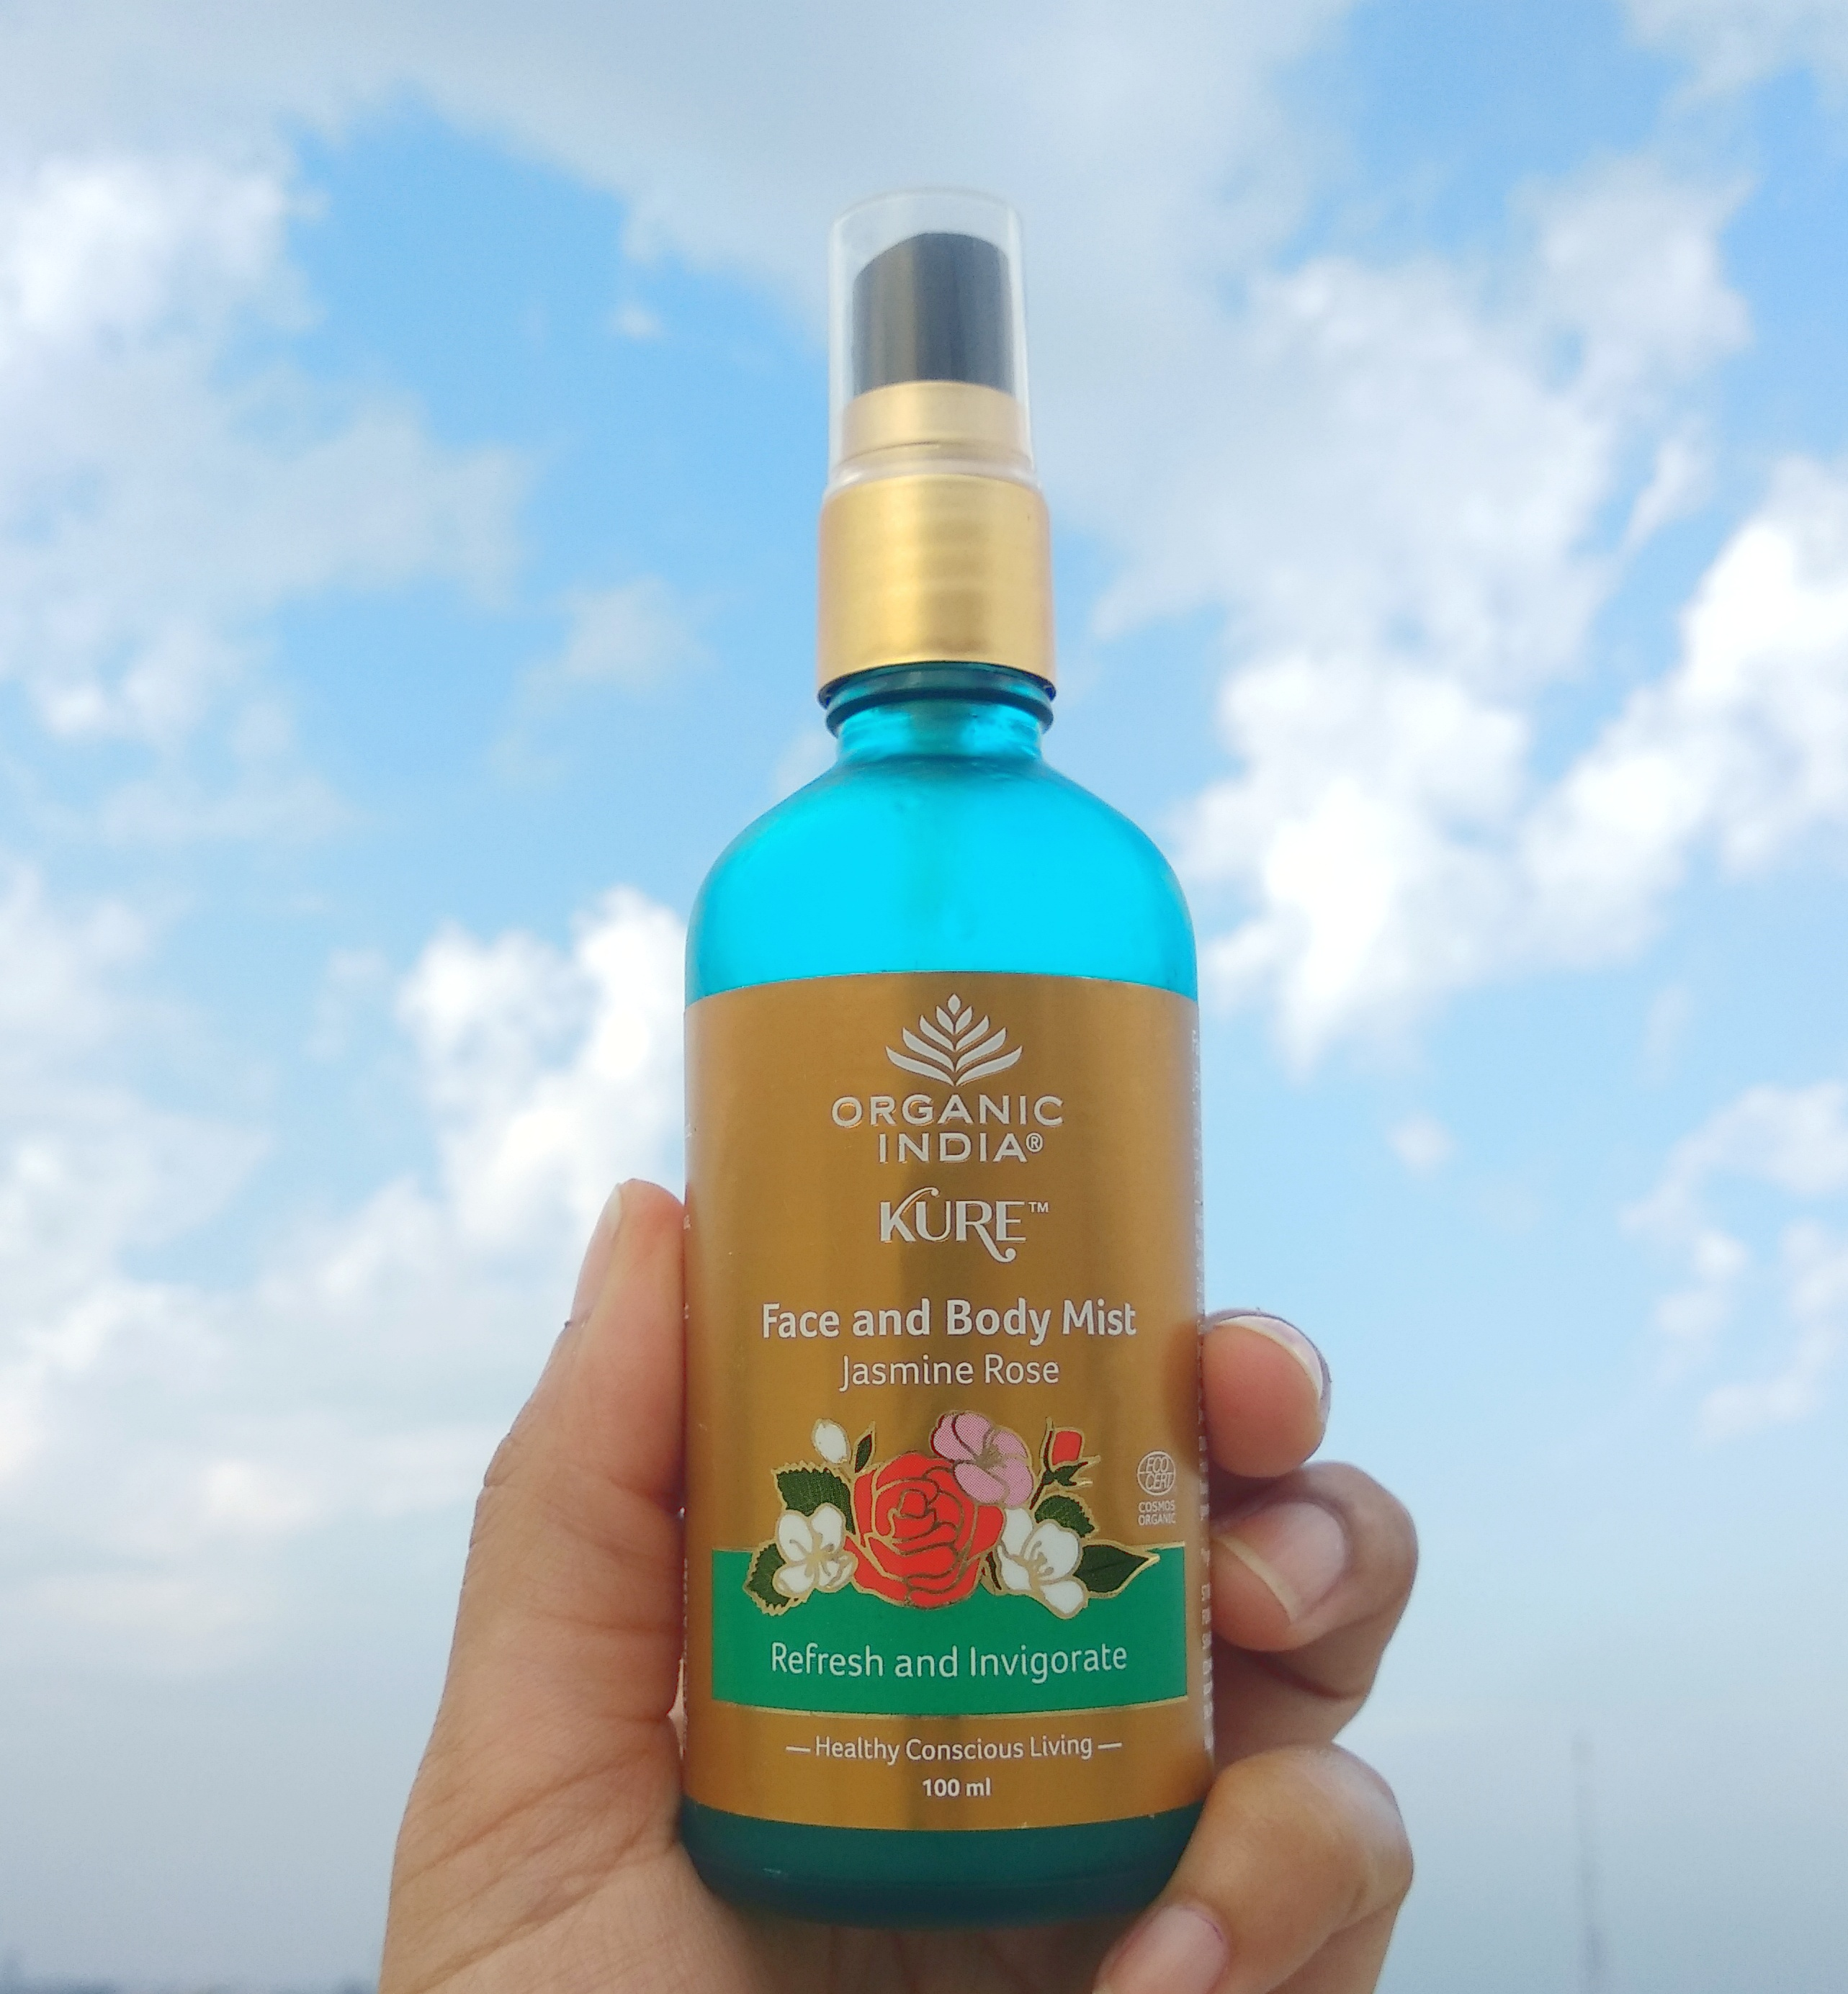 Organic-india-jasmine-and-rose-face-and-body-mist-review